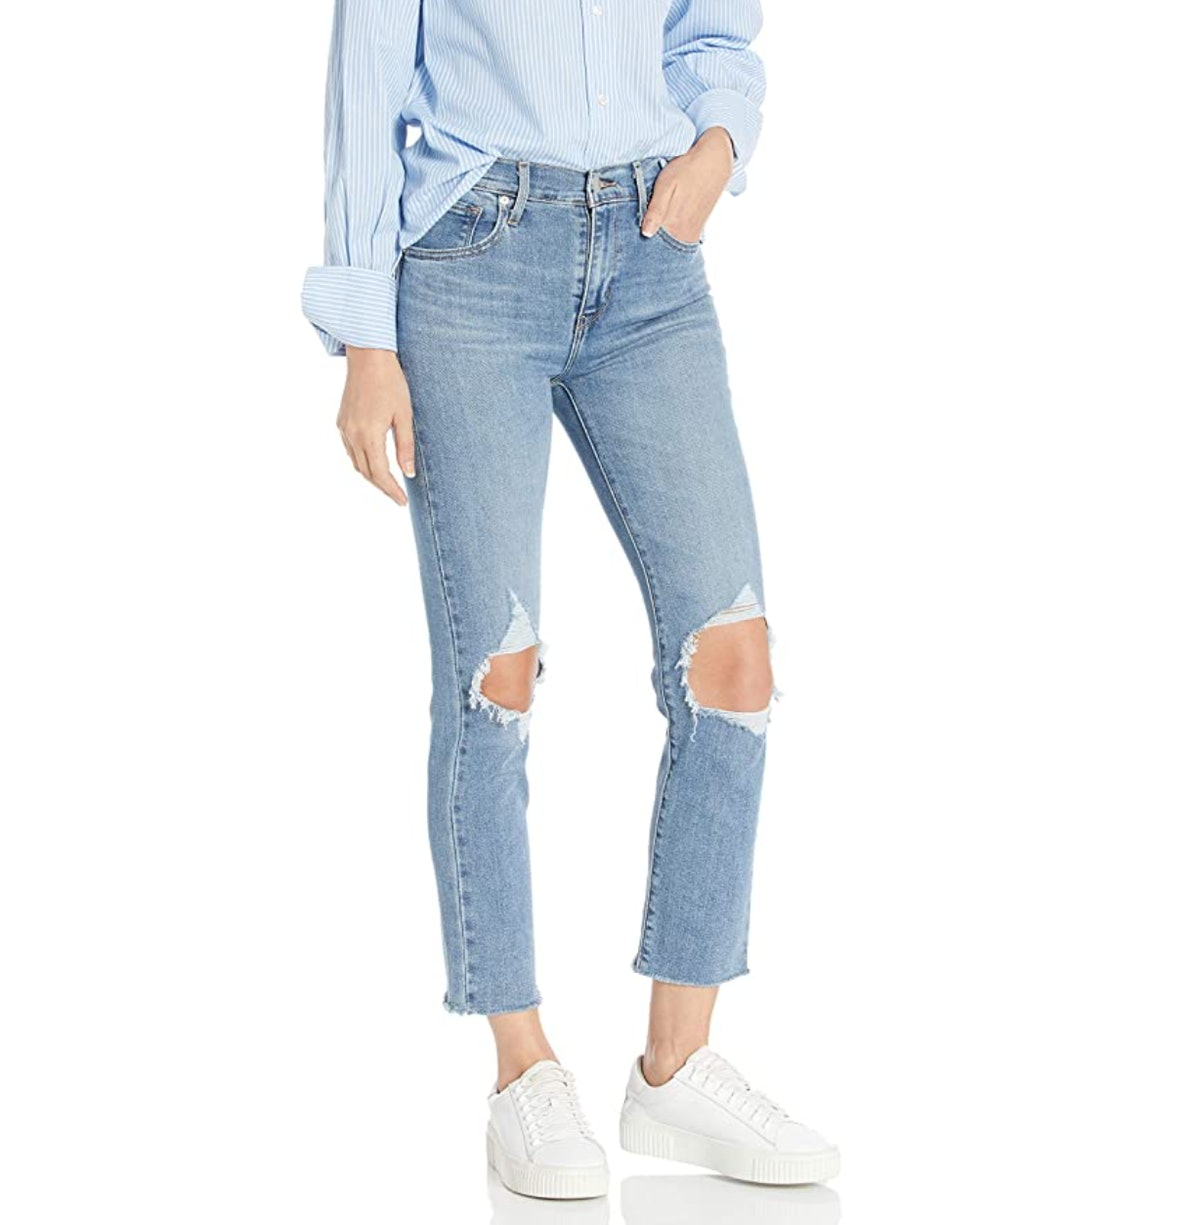 Levi's Women's 724 High Rise Straight Crop Jeans